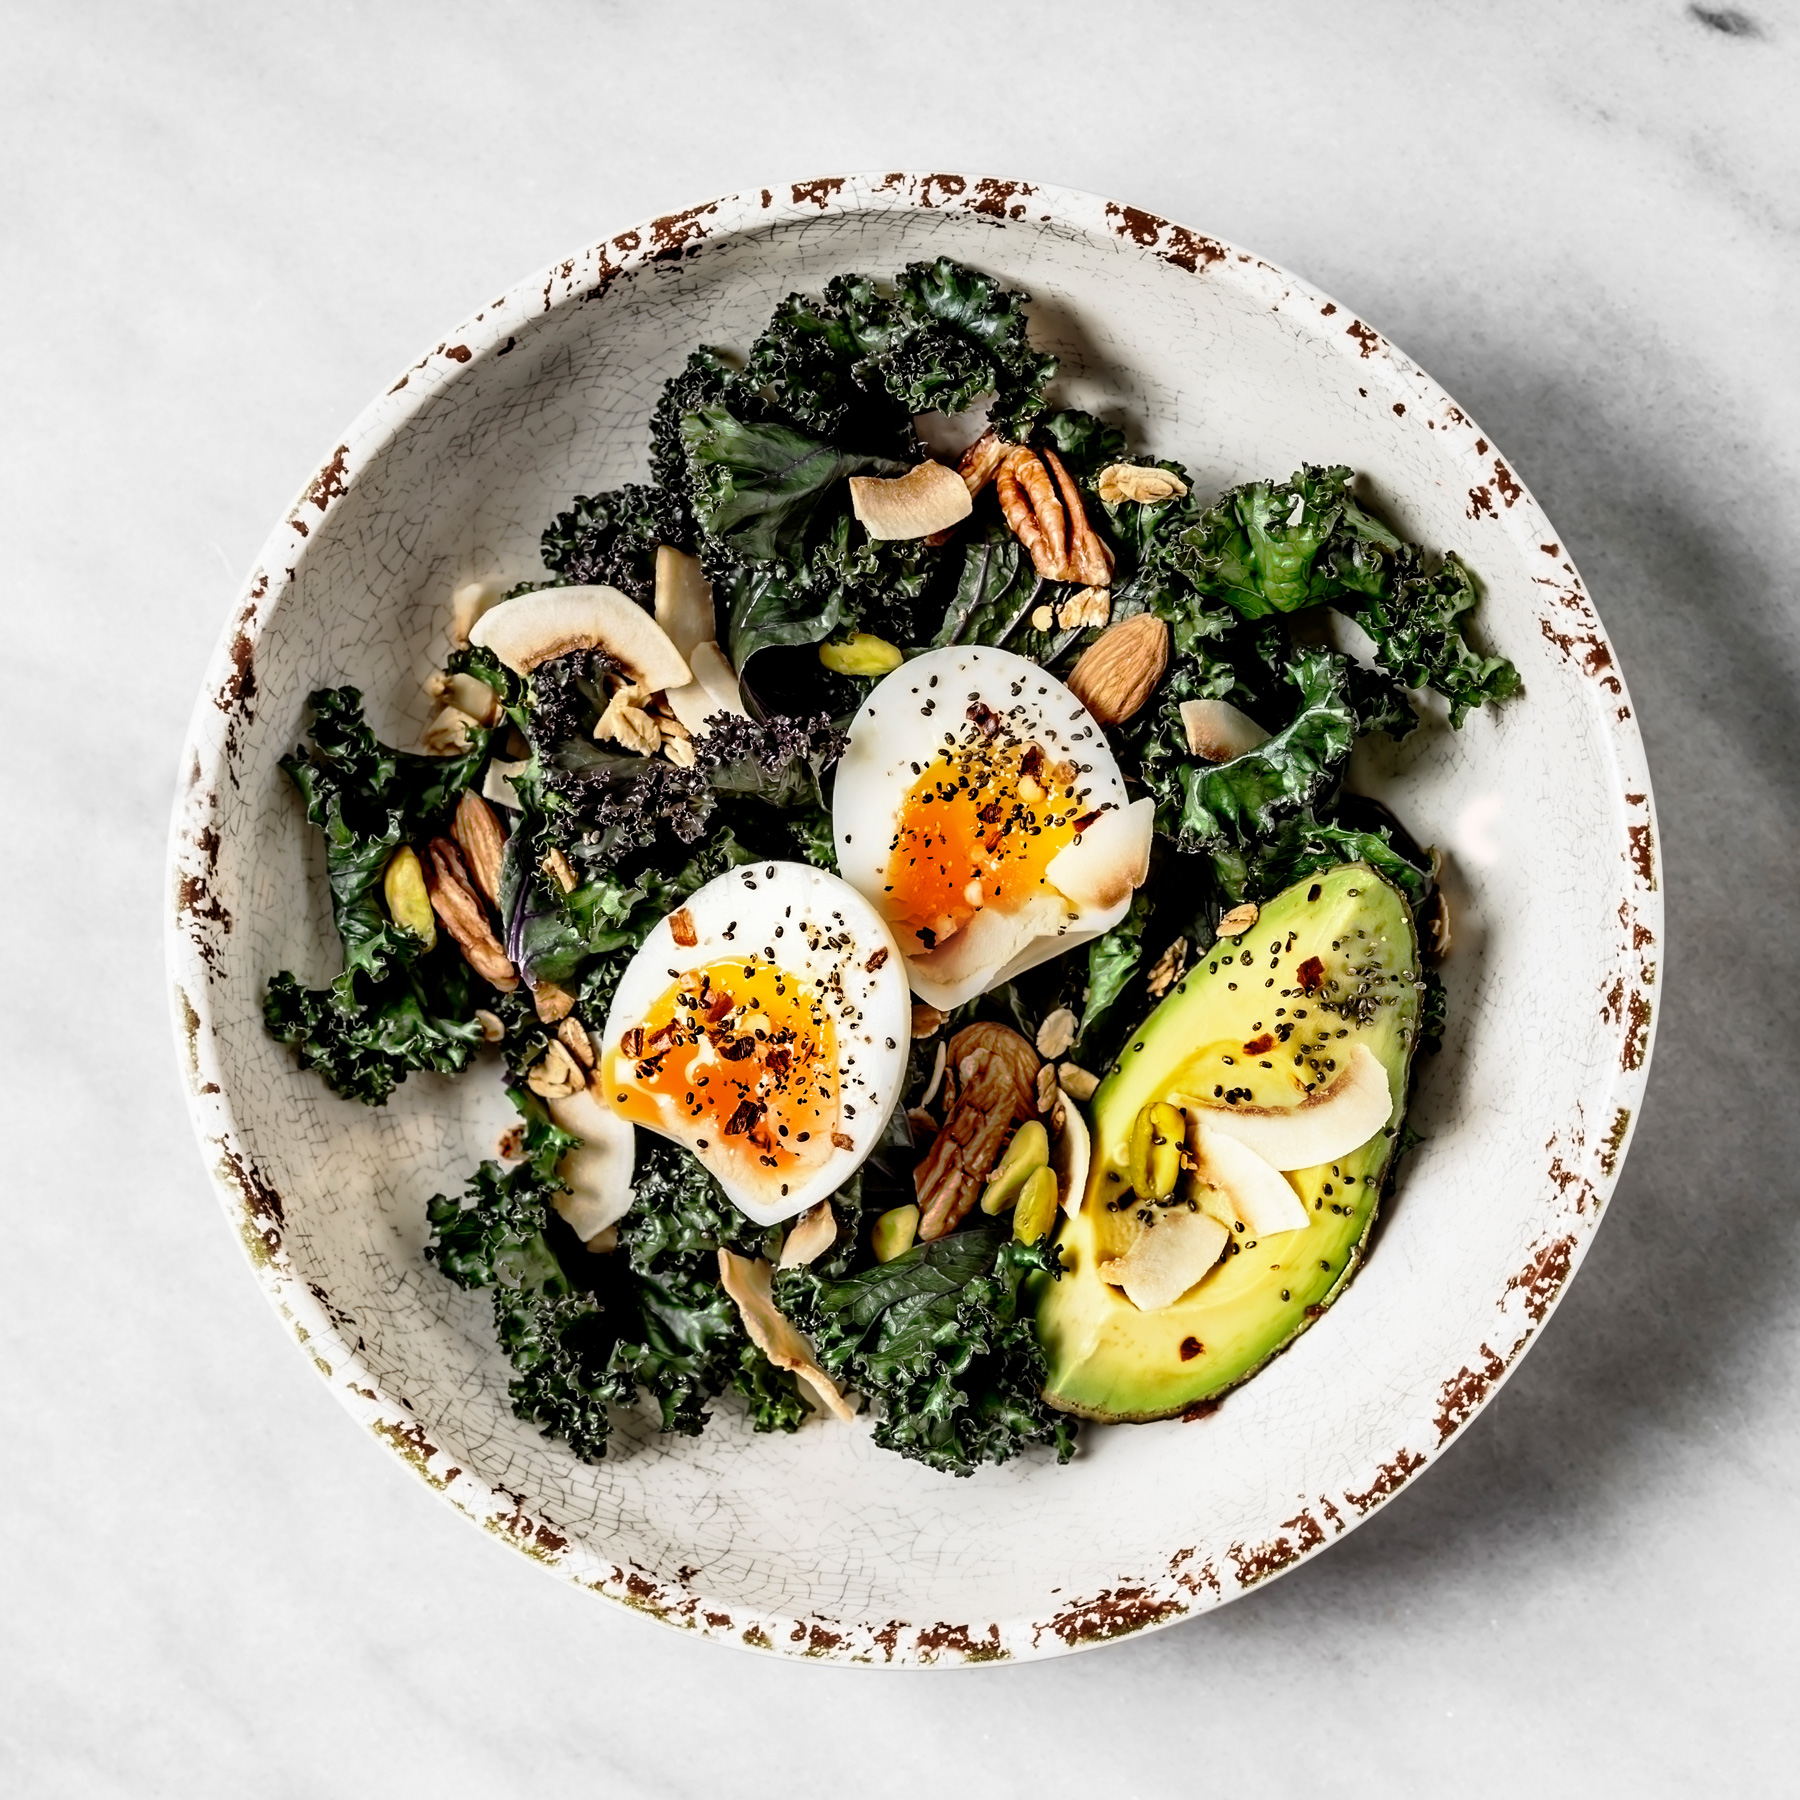 10 Ways to Make Your Home Greener: vegetarian salad dish with kale, avocado, and egg